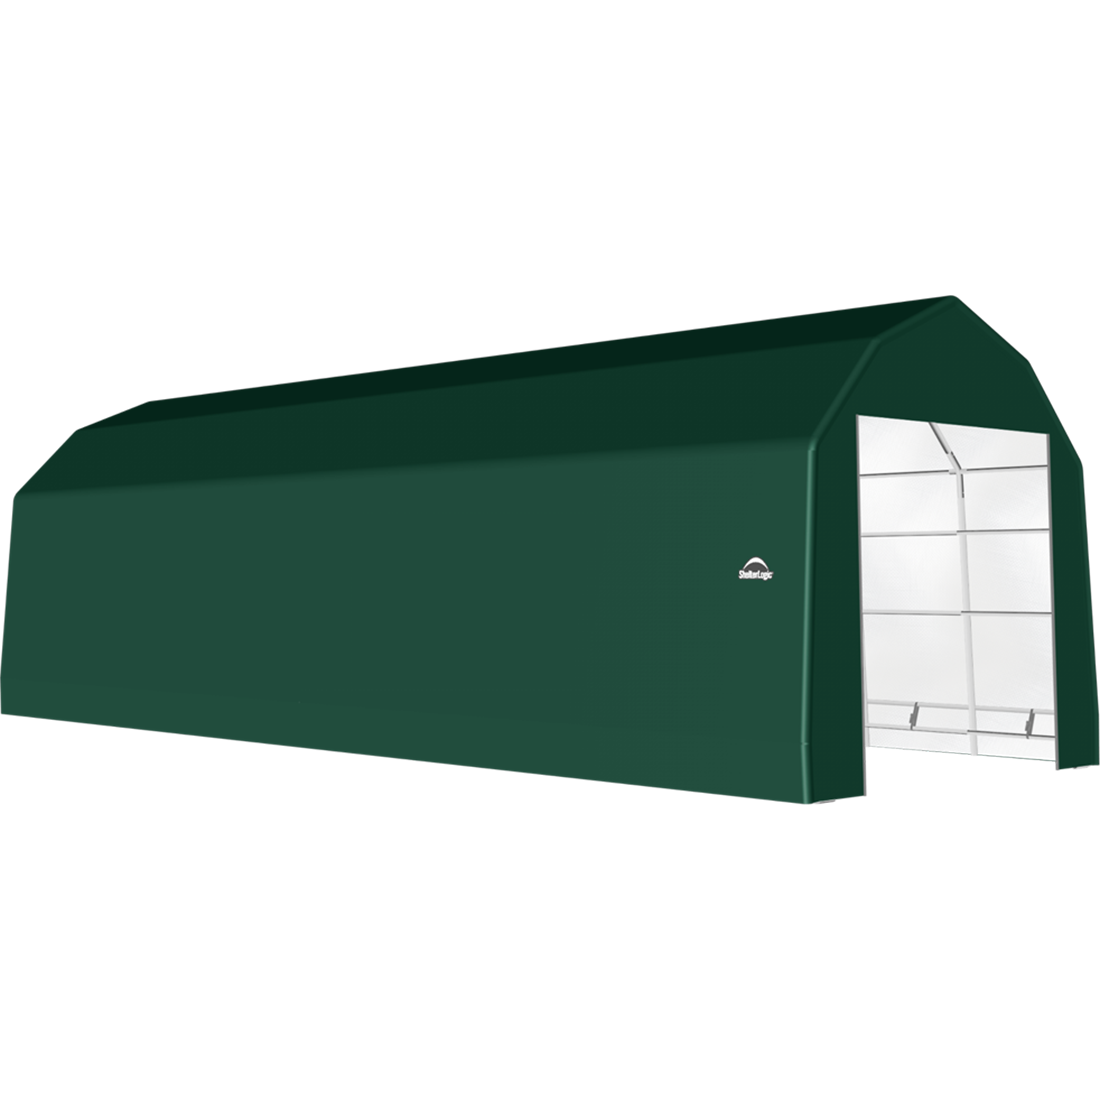 ShelterTech SP Series Barn Shelter, 15 ft. x 40 ft. x 14 ft. Heavy Duty PVC 14.5 oz. Green